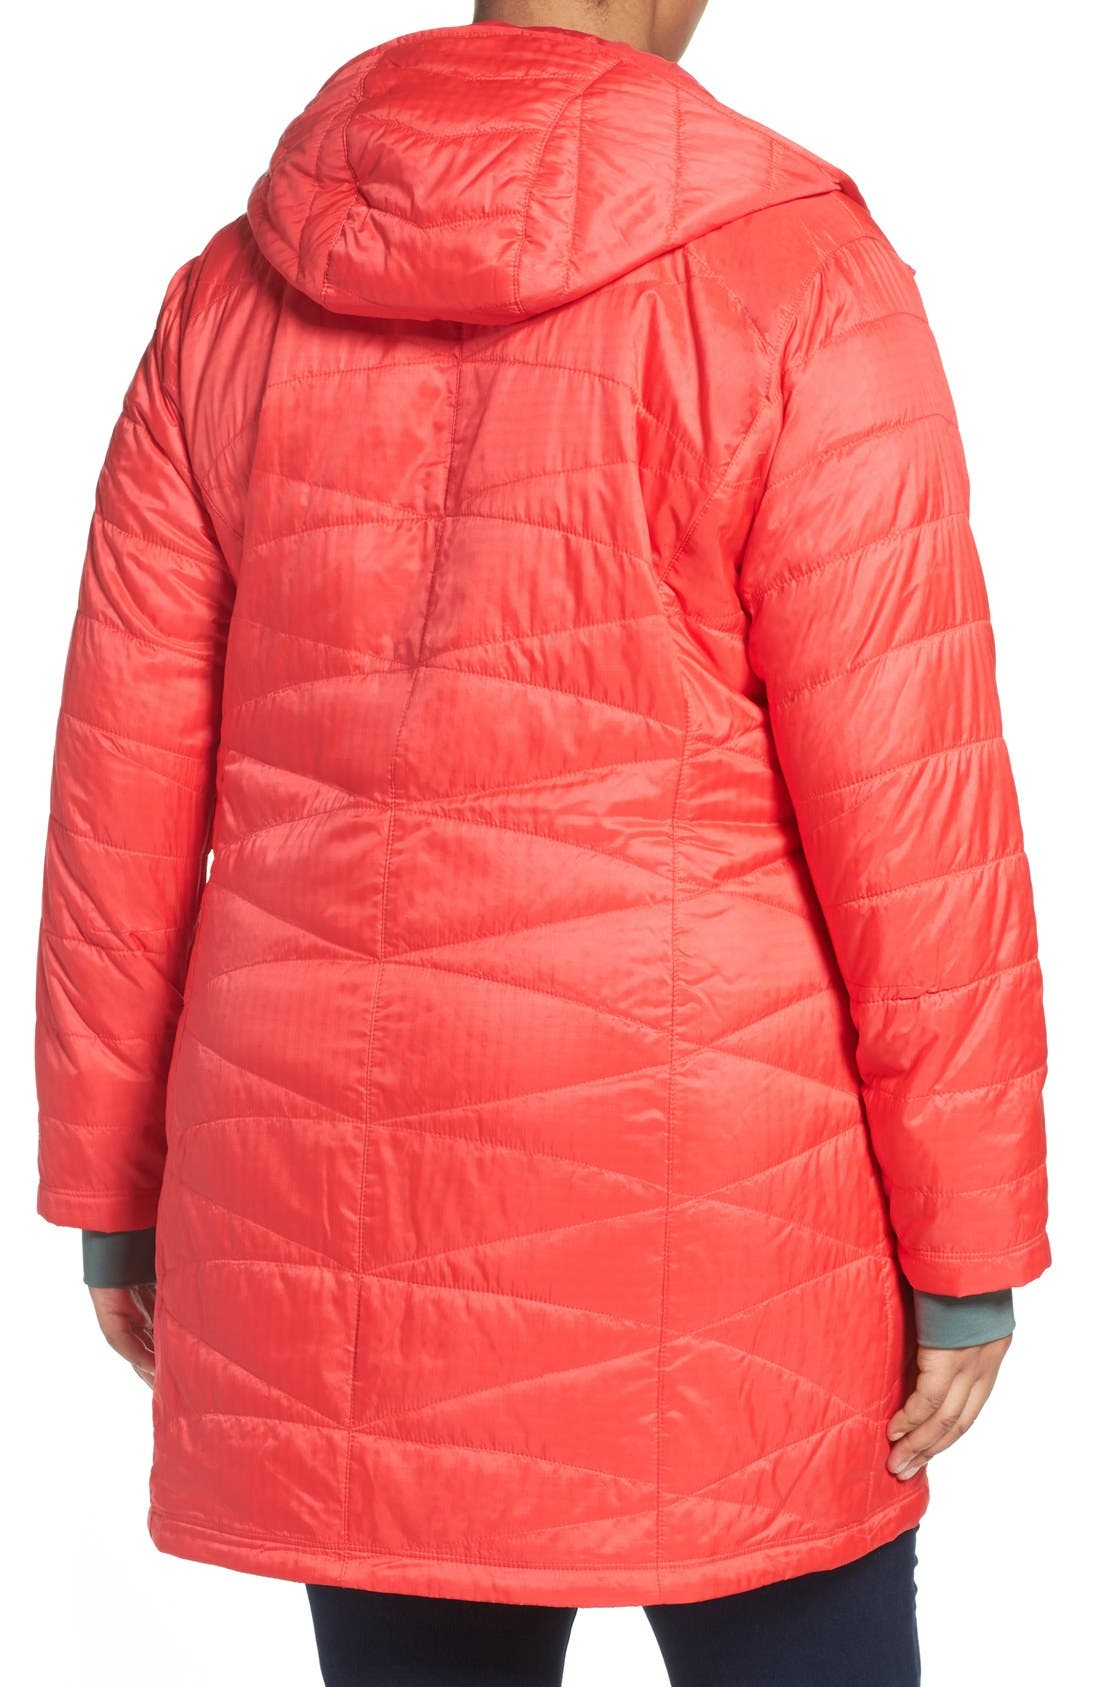 Mighty Lite Hooded Jacket,                             Alternate thumbnail 12, color,